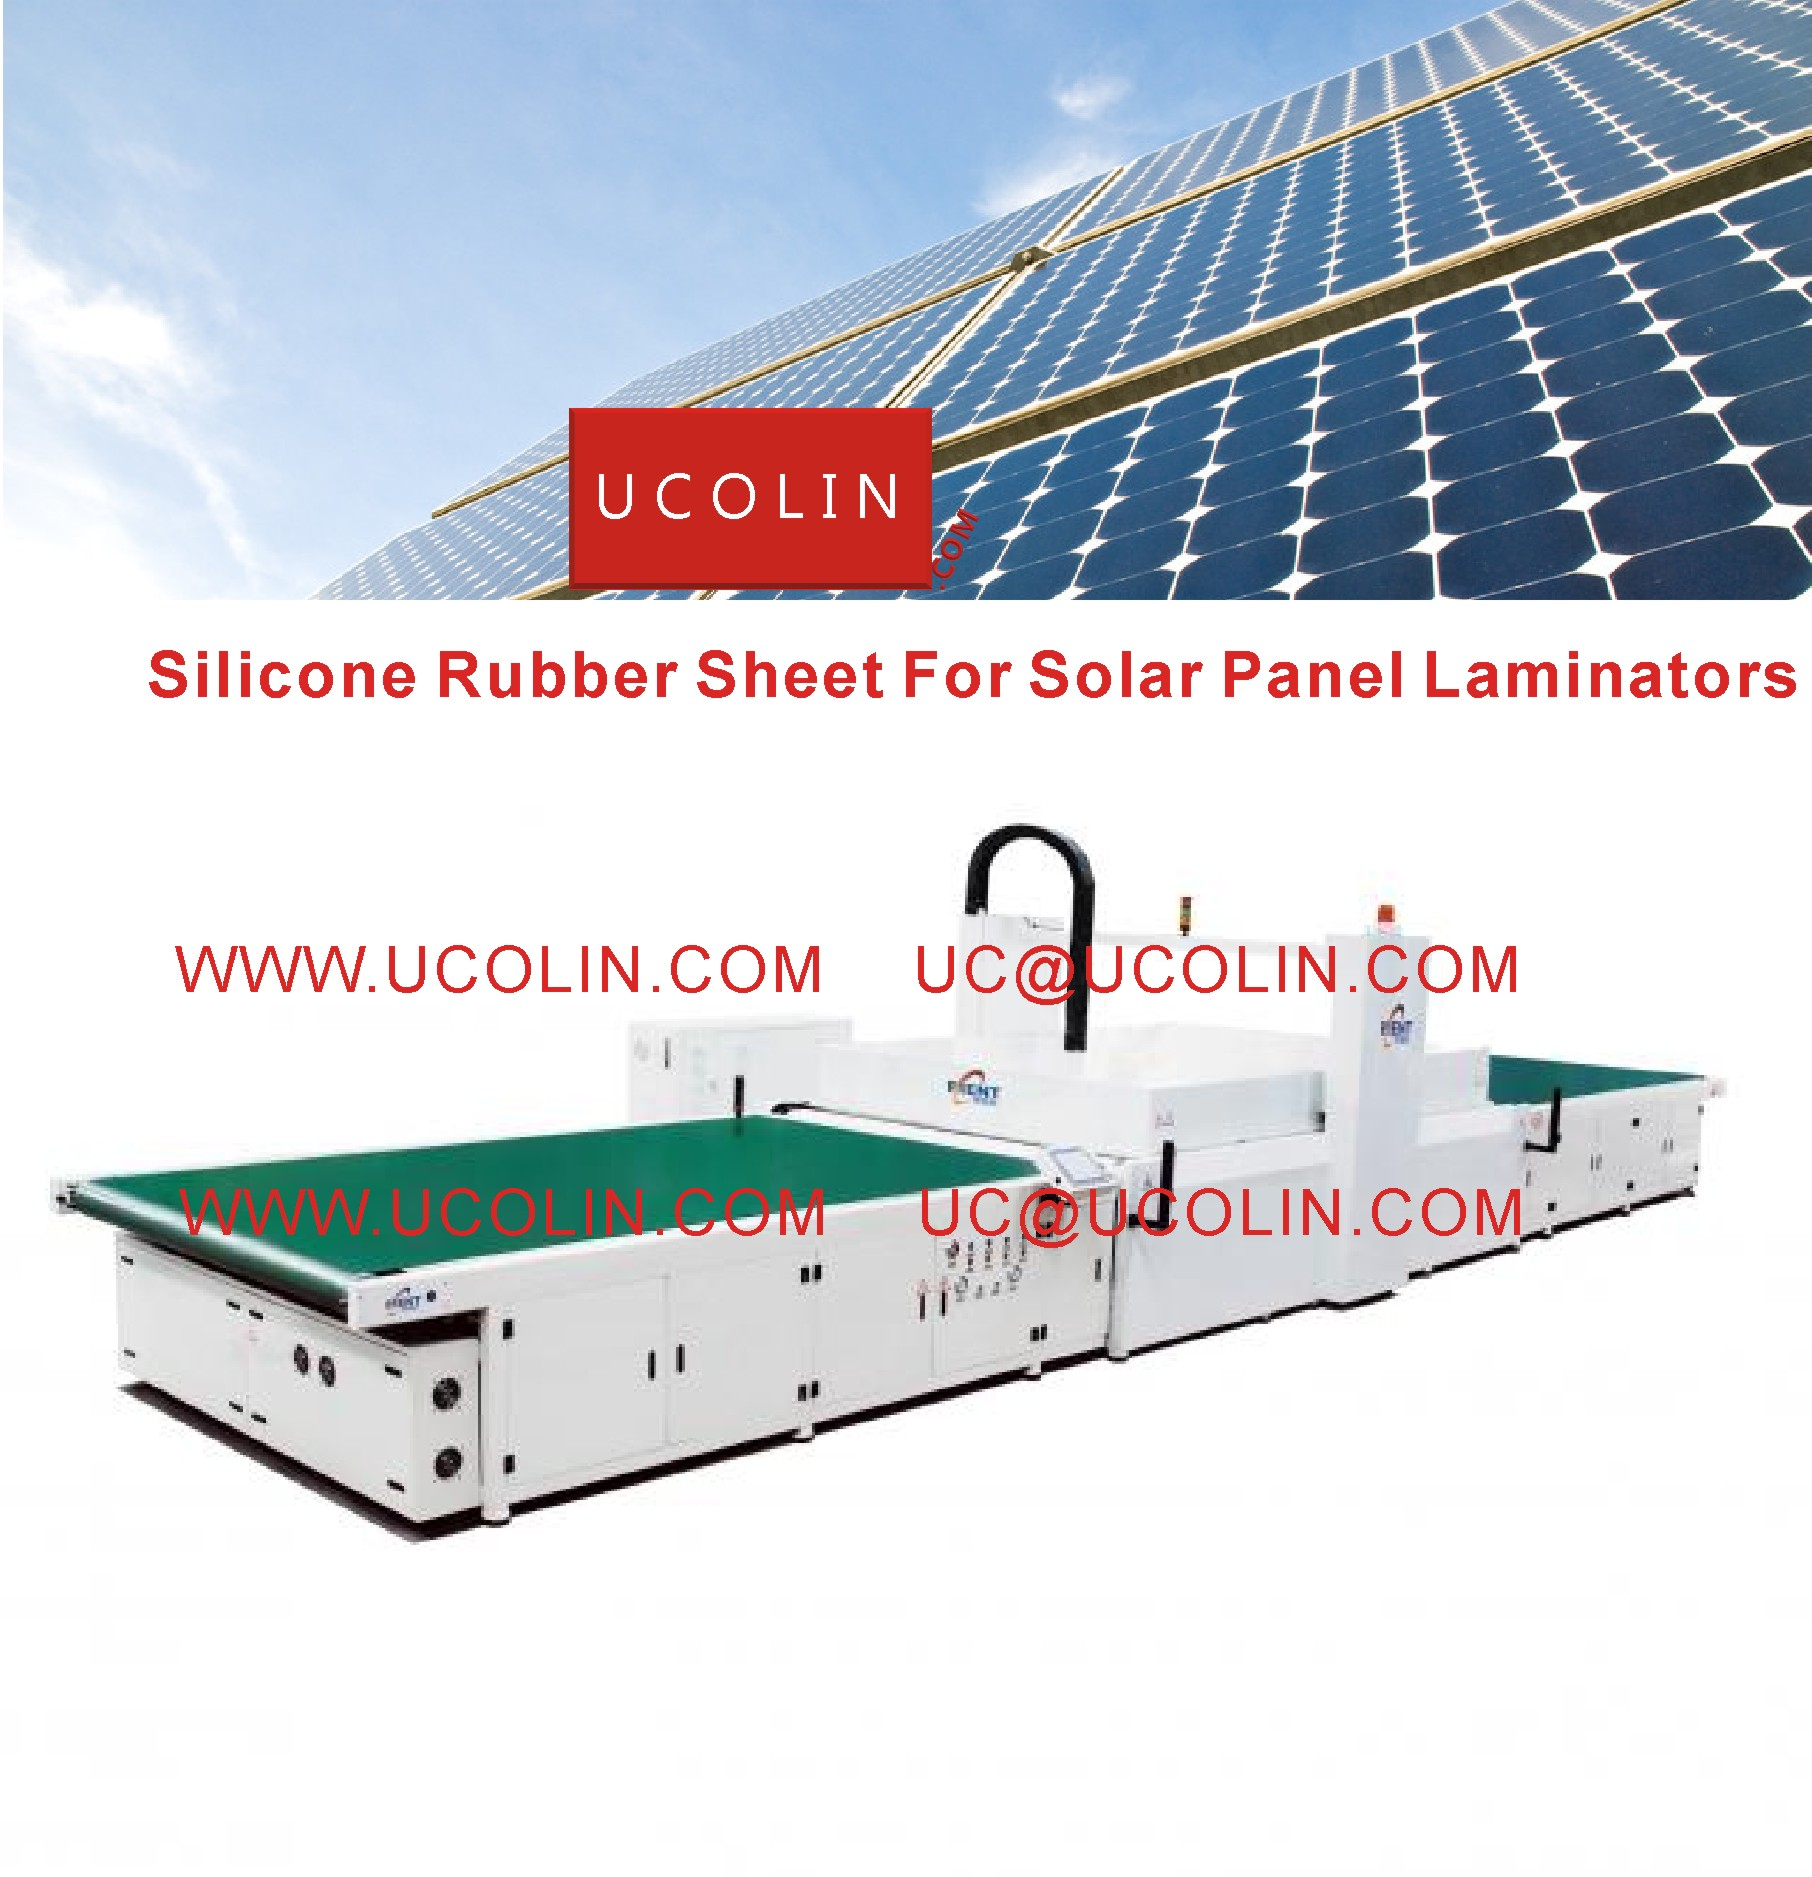 01 Silicon Rubber Sheet For Solar Panel Laminators